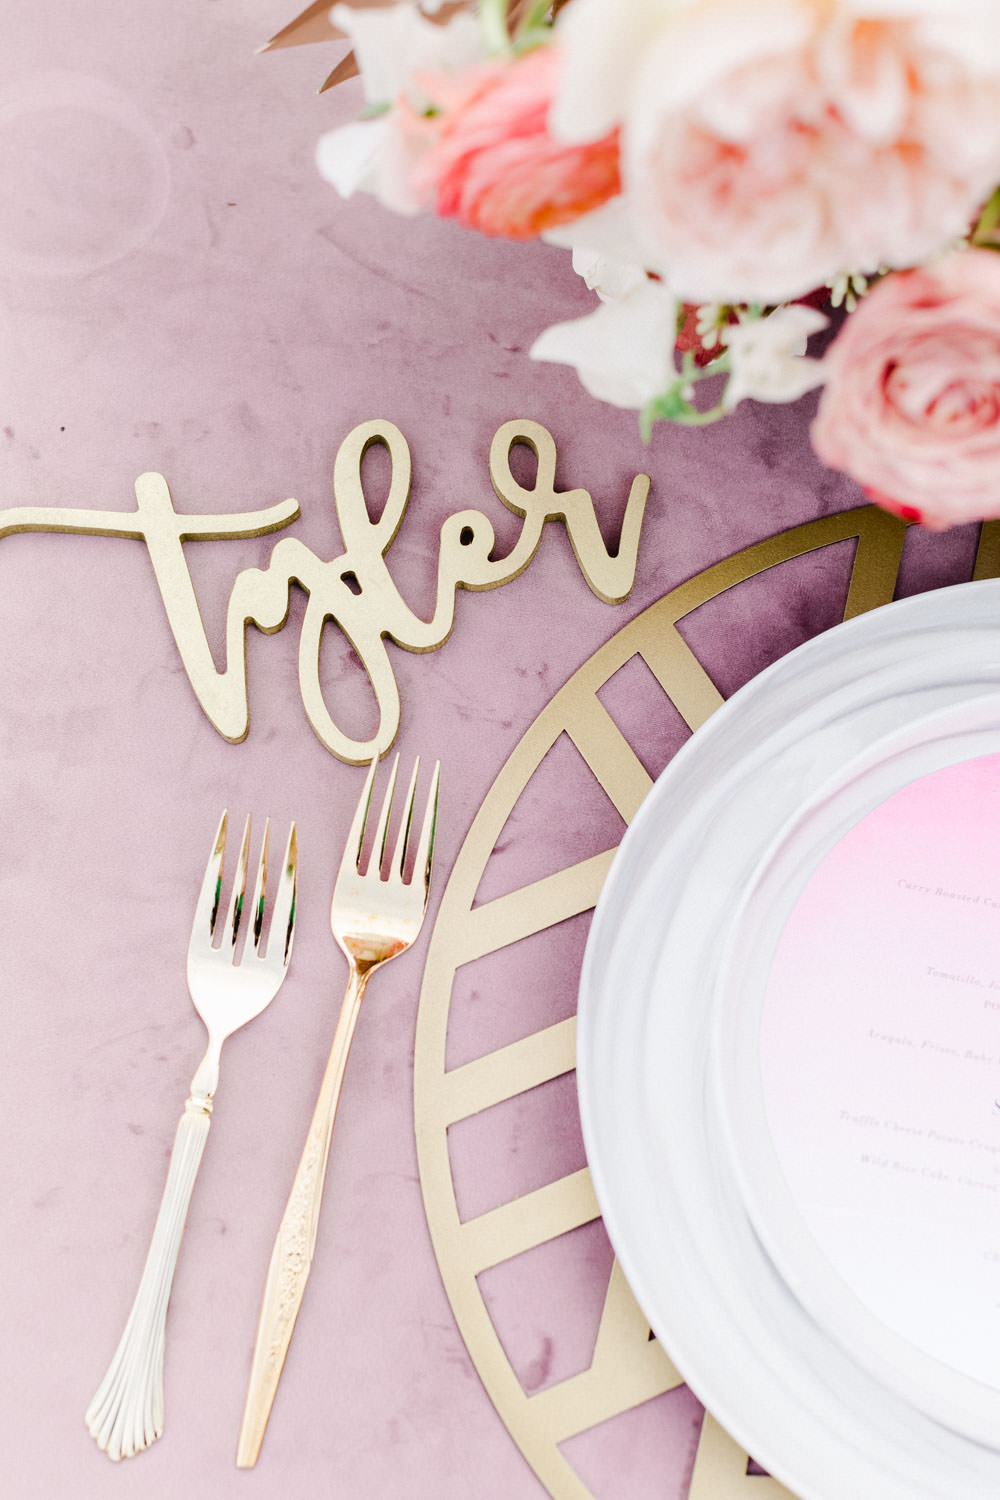 Gold laser cut wooden name card place setting, Rose quartz velvet linen table with orange glassware and marble dinnerware, Pink peach violet and white floral arrangement, Wedding at Estancia La Jolla, Cavin Elizabeth Photography